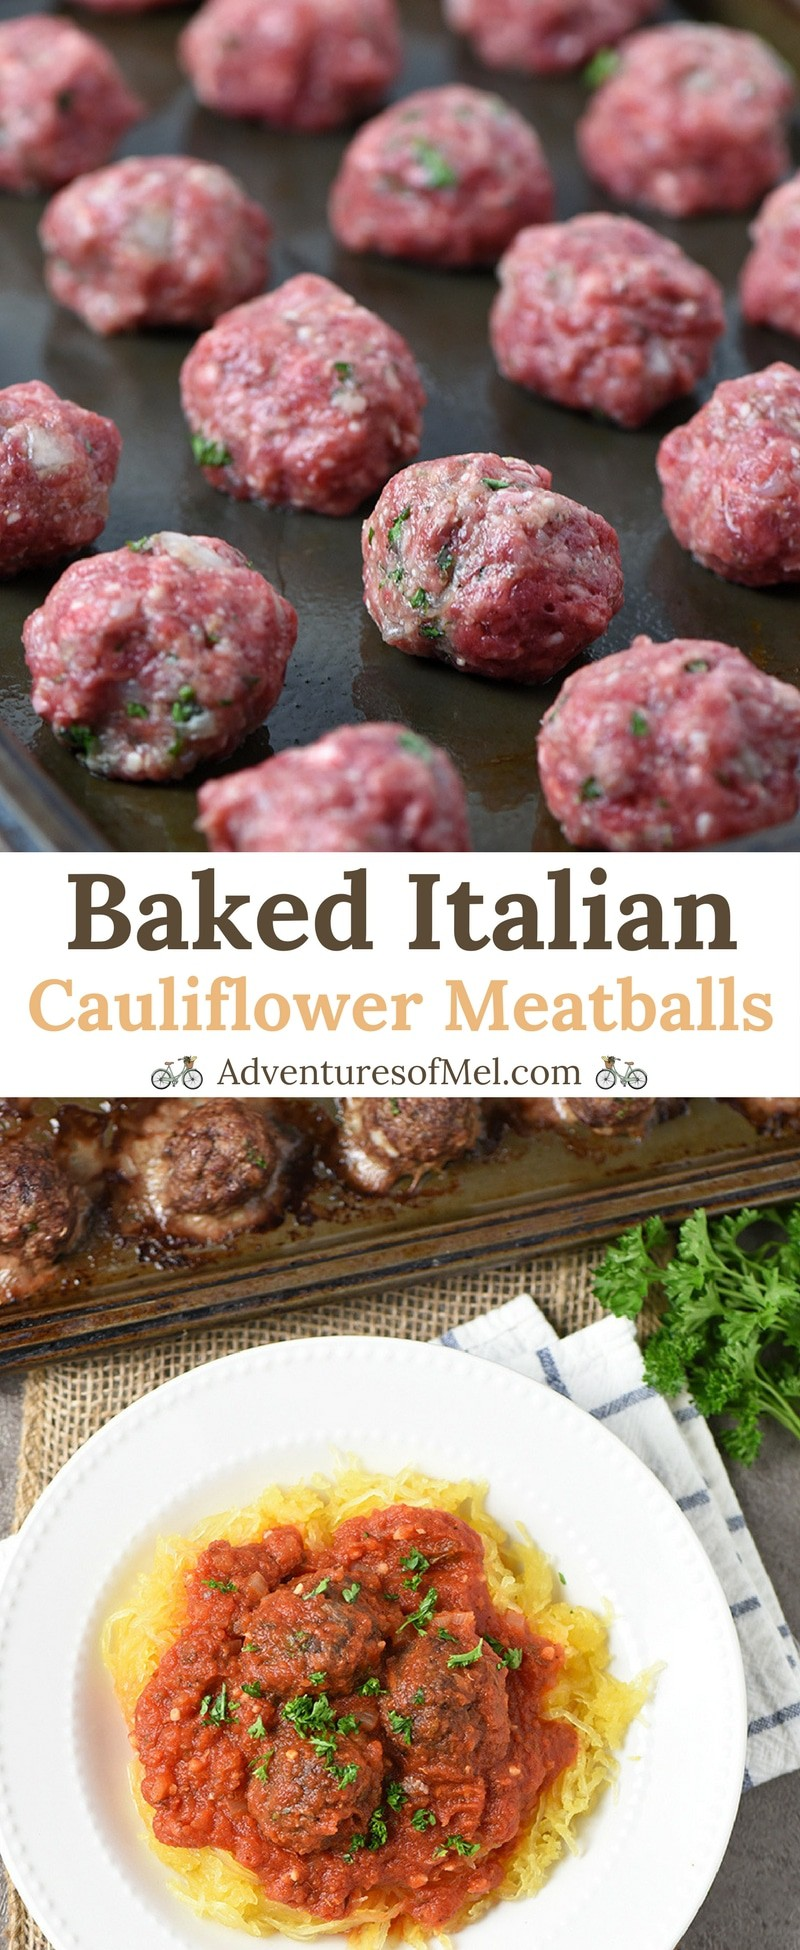 Baked Italian Cauliflower Meatballs Recipe